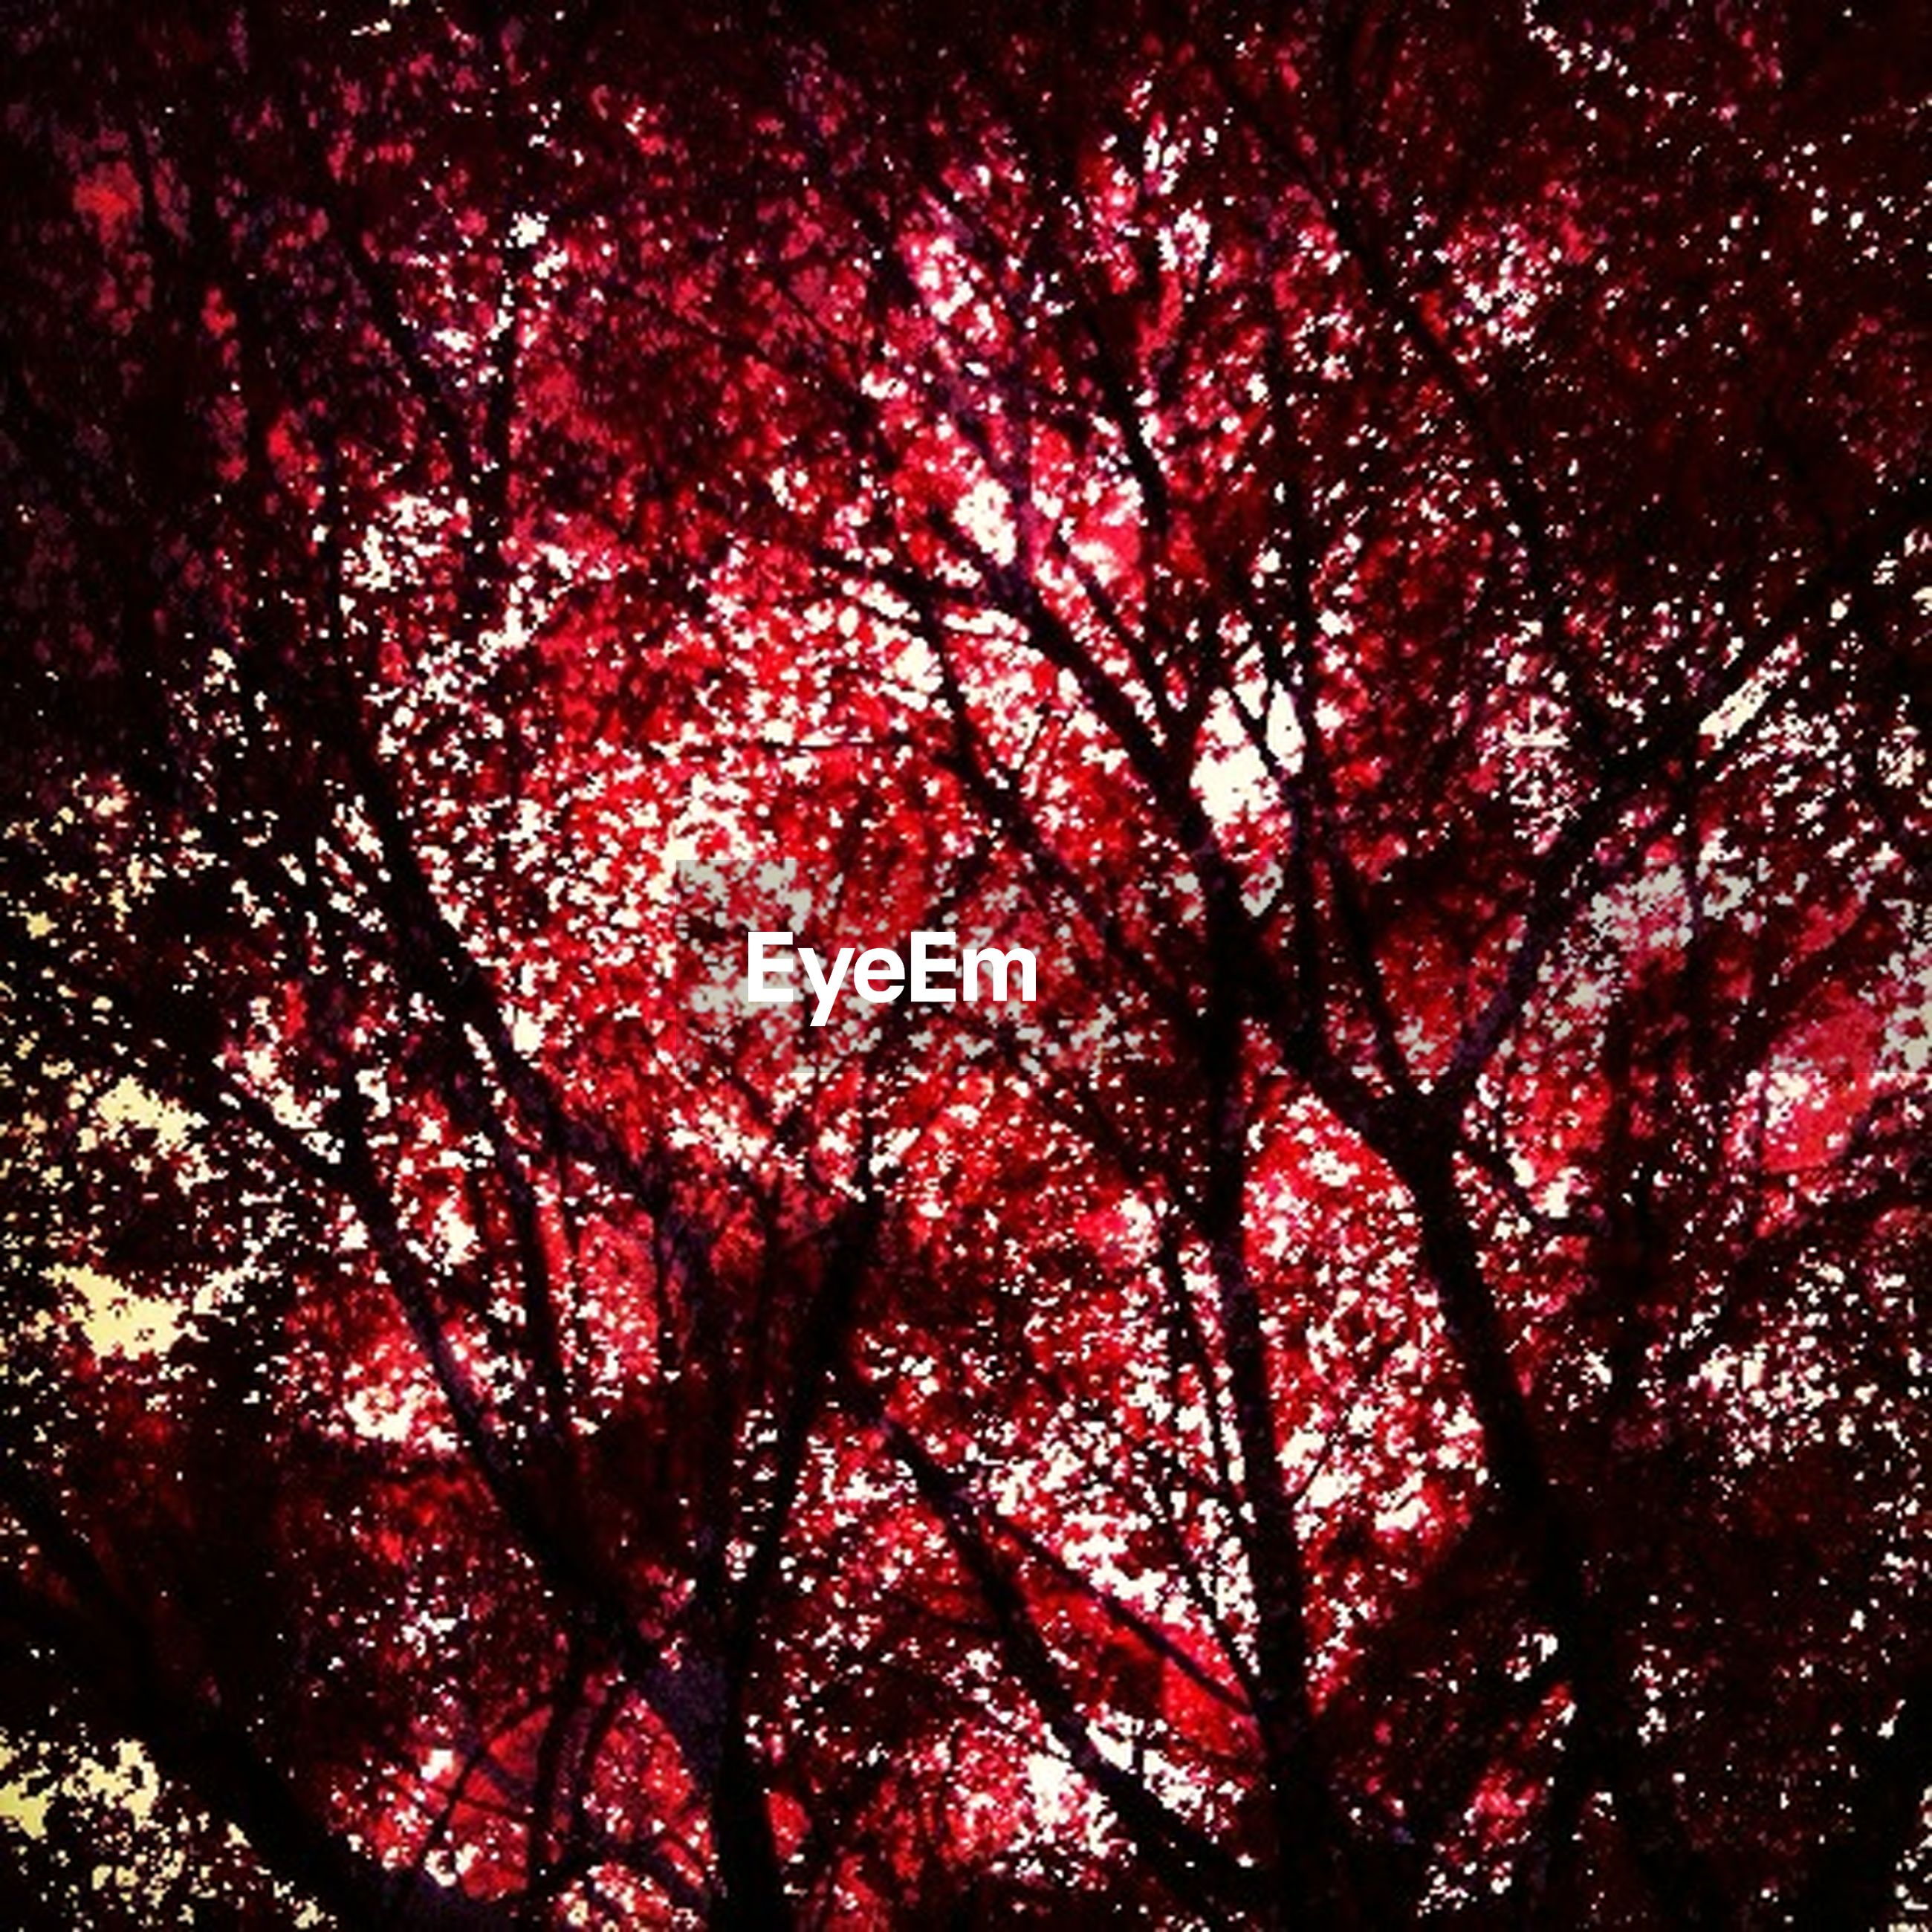 tree, low angle view, branch, red, autumn, backgrounds, beauty in nature, growth, full frame, nature, tranquility, change, season, scenics, sky, outdoors, no people, day, leaf, silhouette